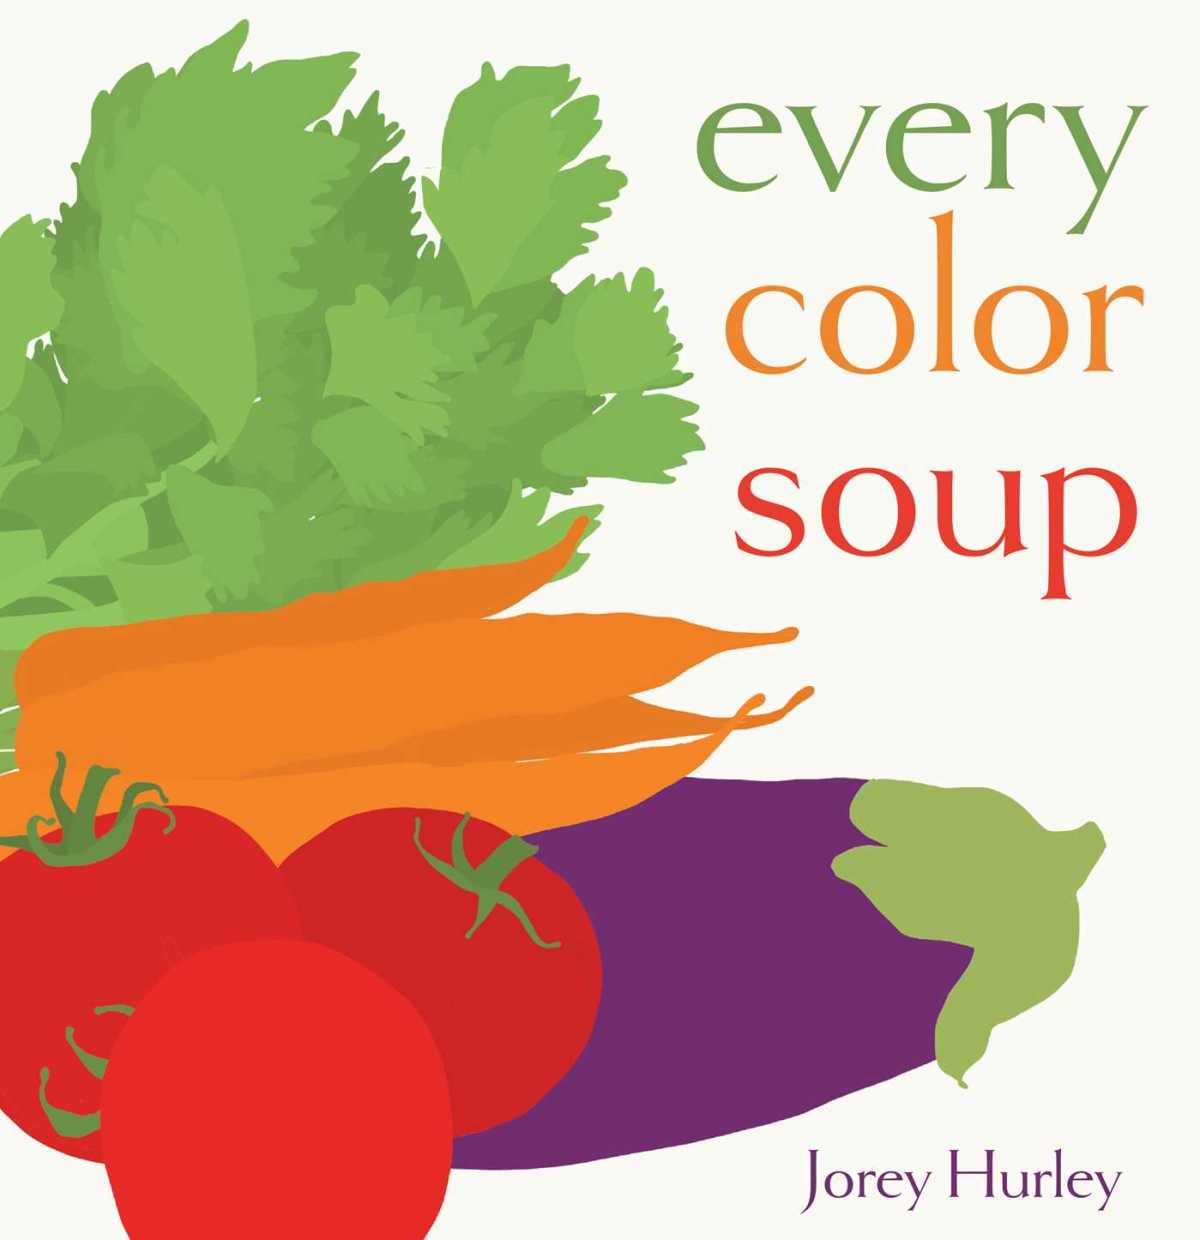 every color soup cover image